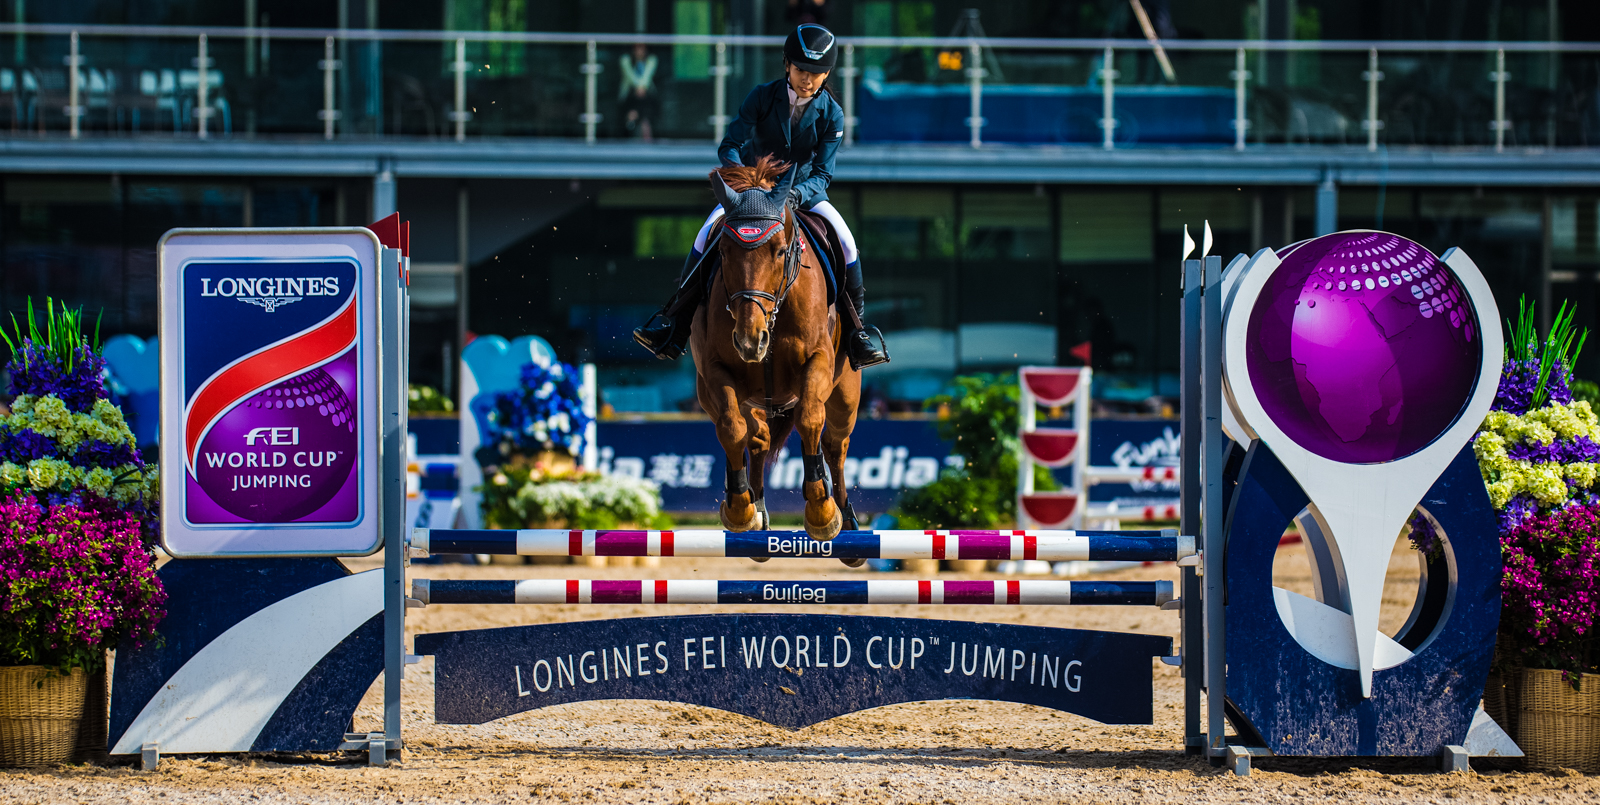 Feng Zhiqi of China rides Juicy Boy during the Longines FEI World Cup Jumping - China League at Chaoyang Park on May 8, 2016 in Beijing, China.